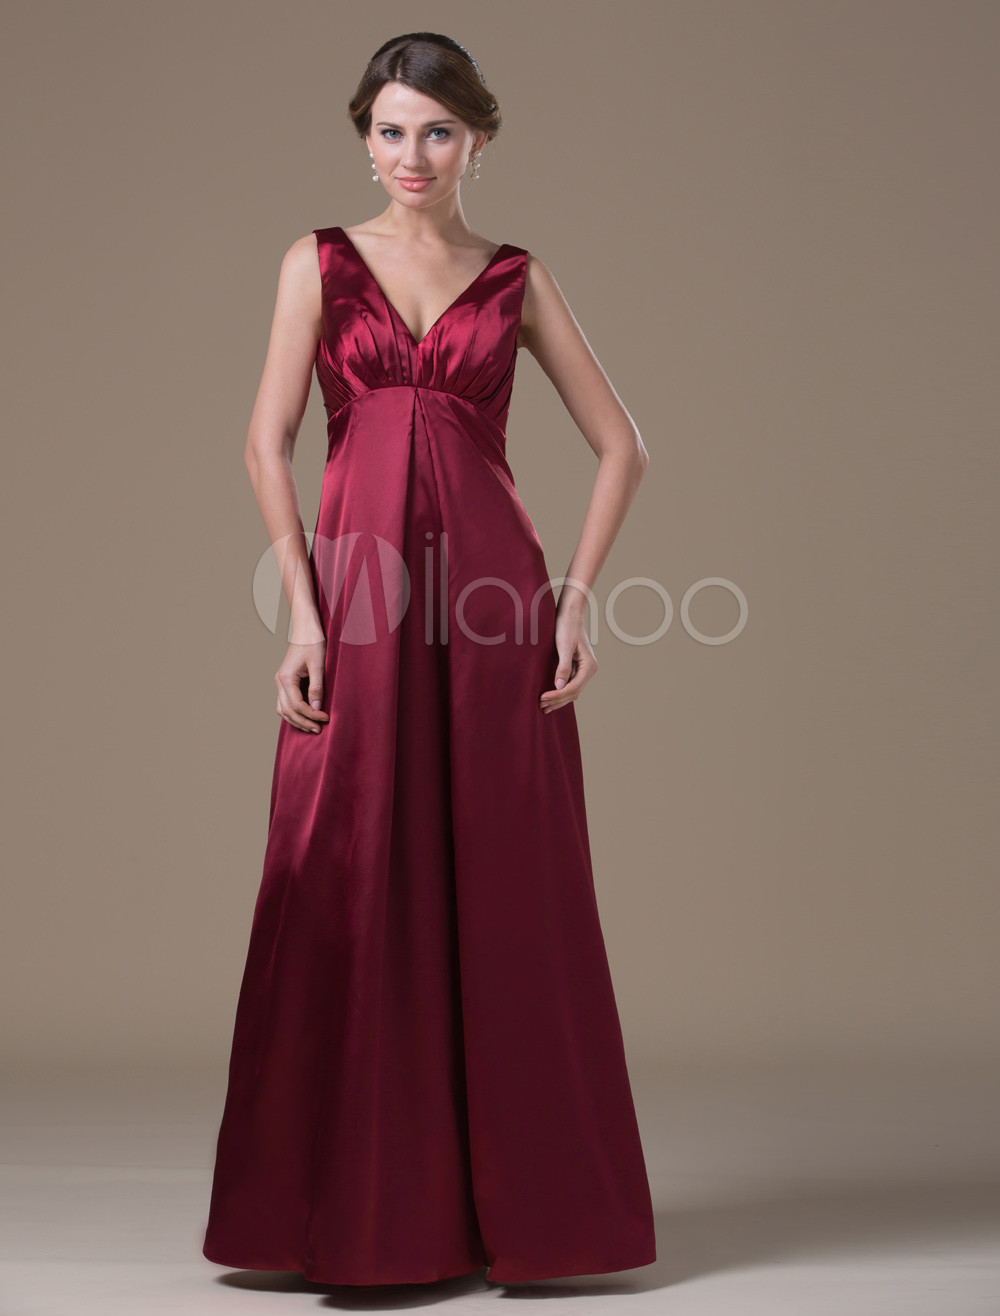 Classical Chocolate Spandex Satin A-line Floor-length Maternity Bridesmaid Dress